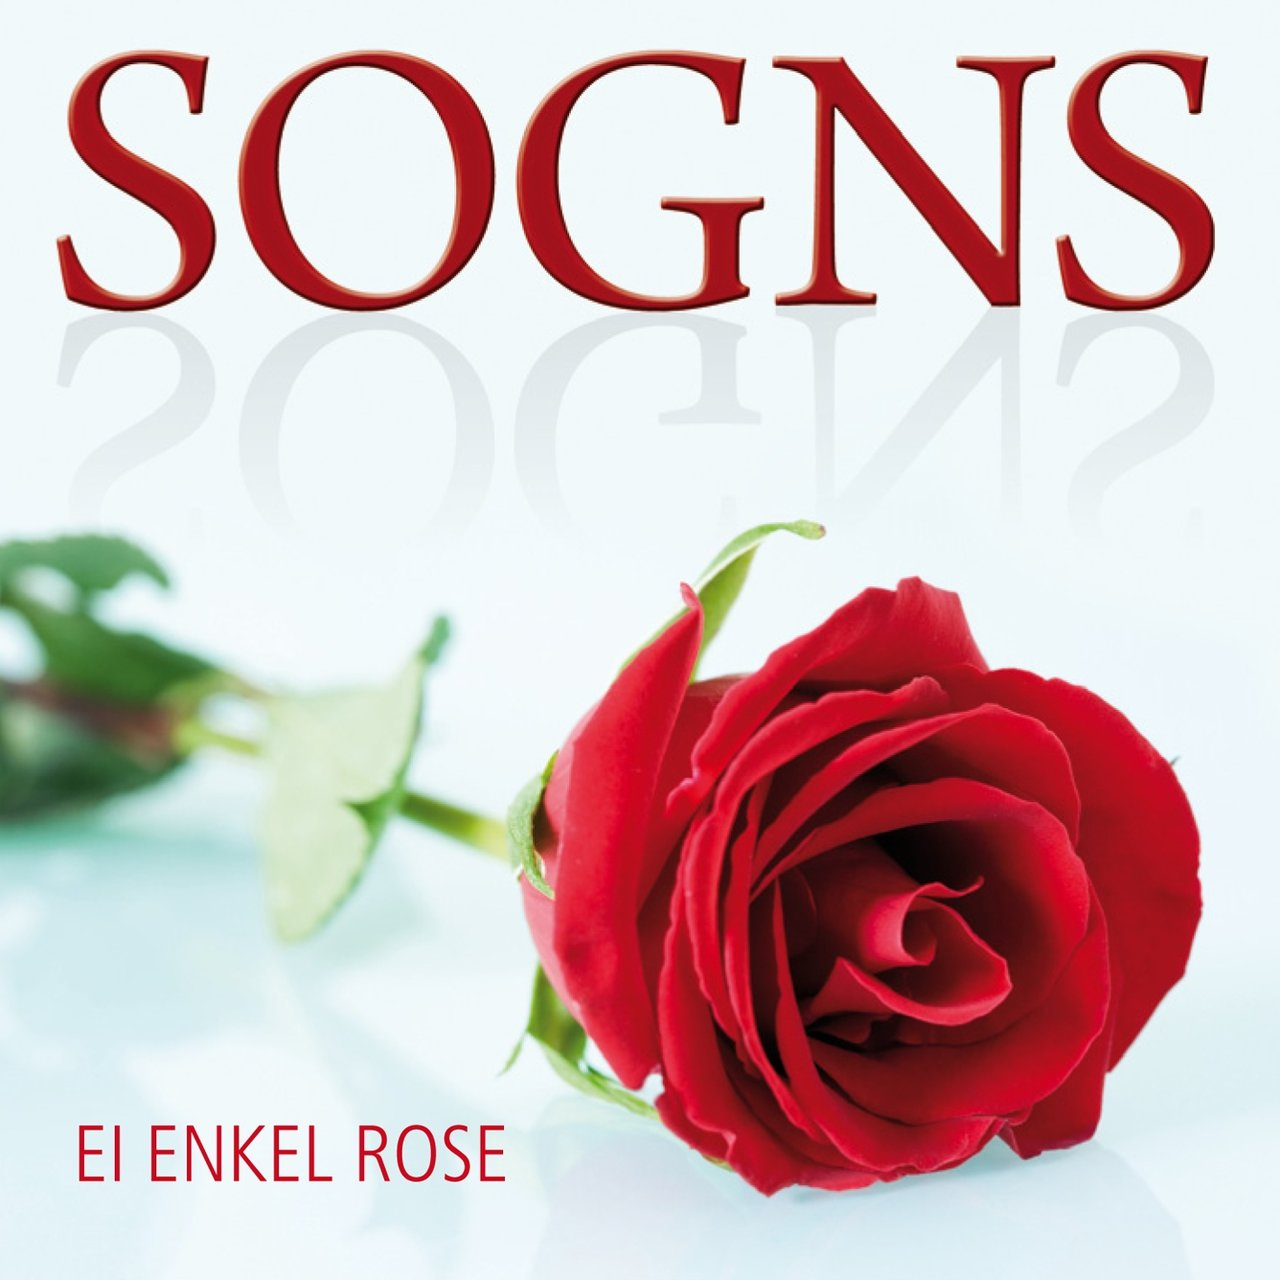 Ei Enkel Rose (Single)